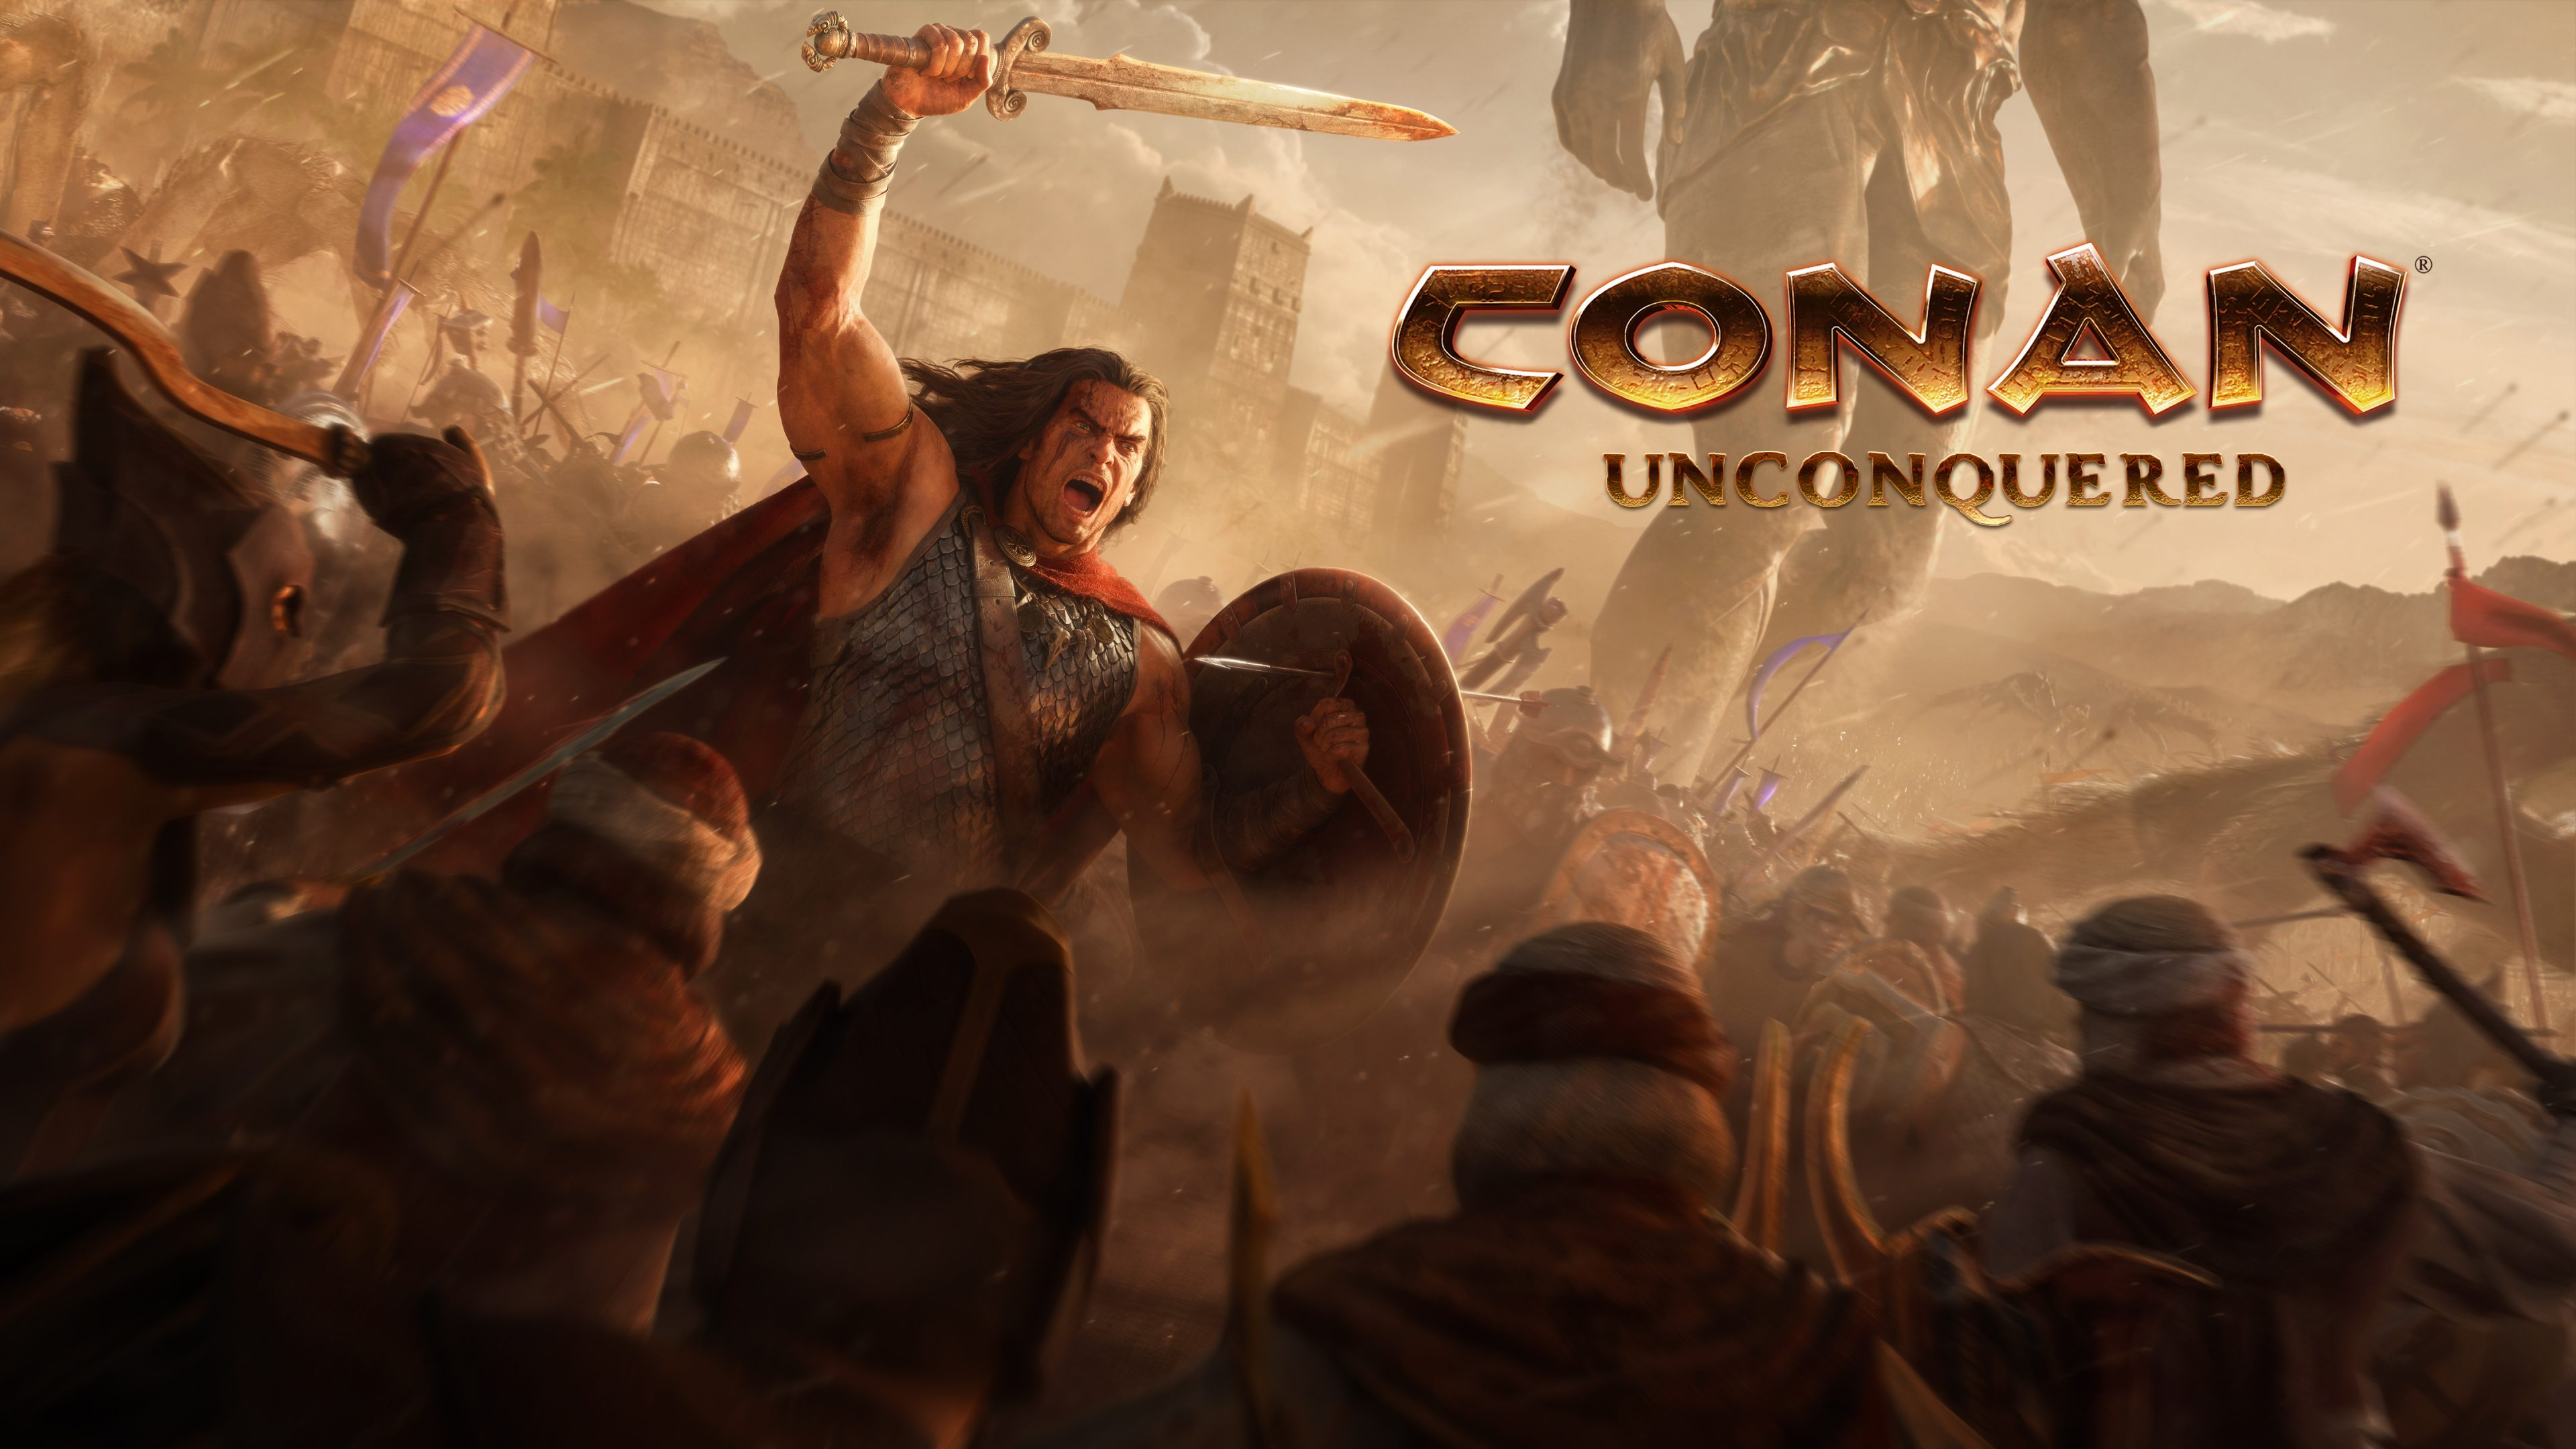 Conan Unconquered is the first RTS set in the Conan the Barbarian universe